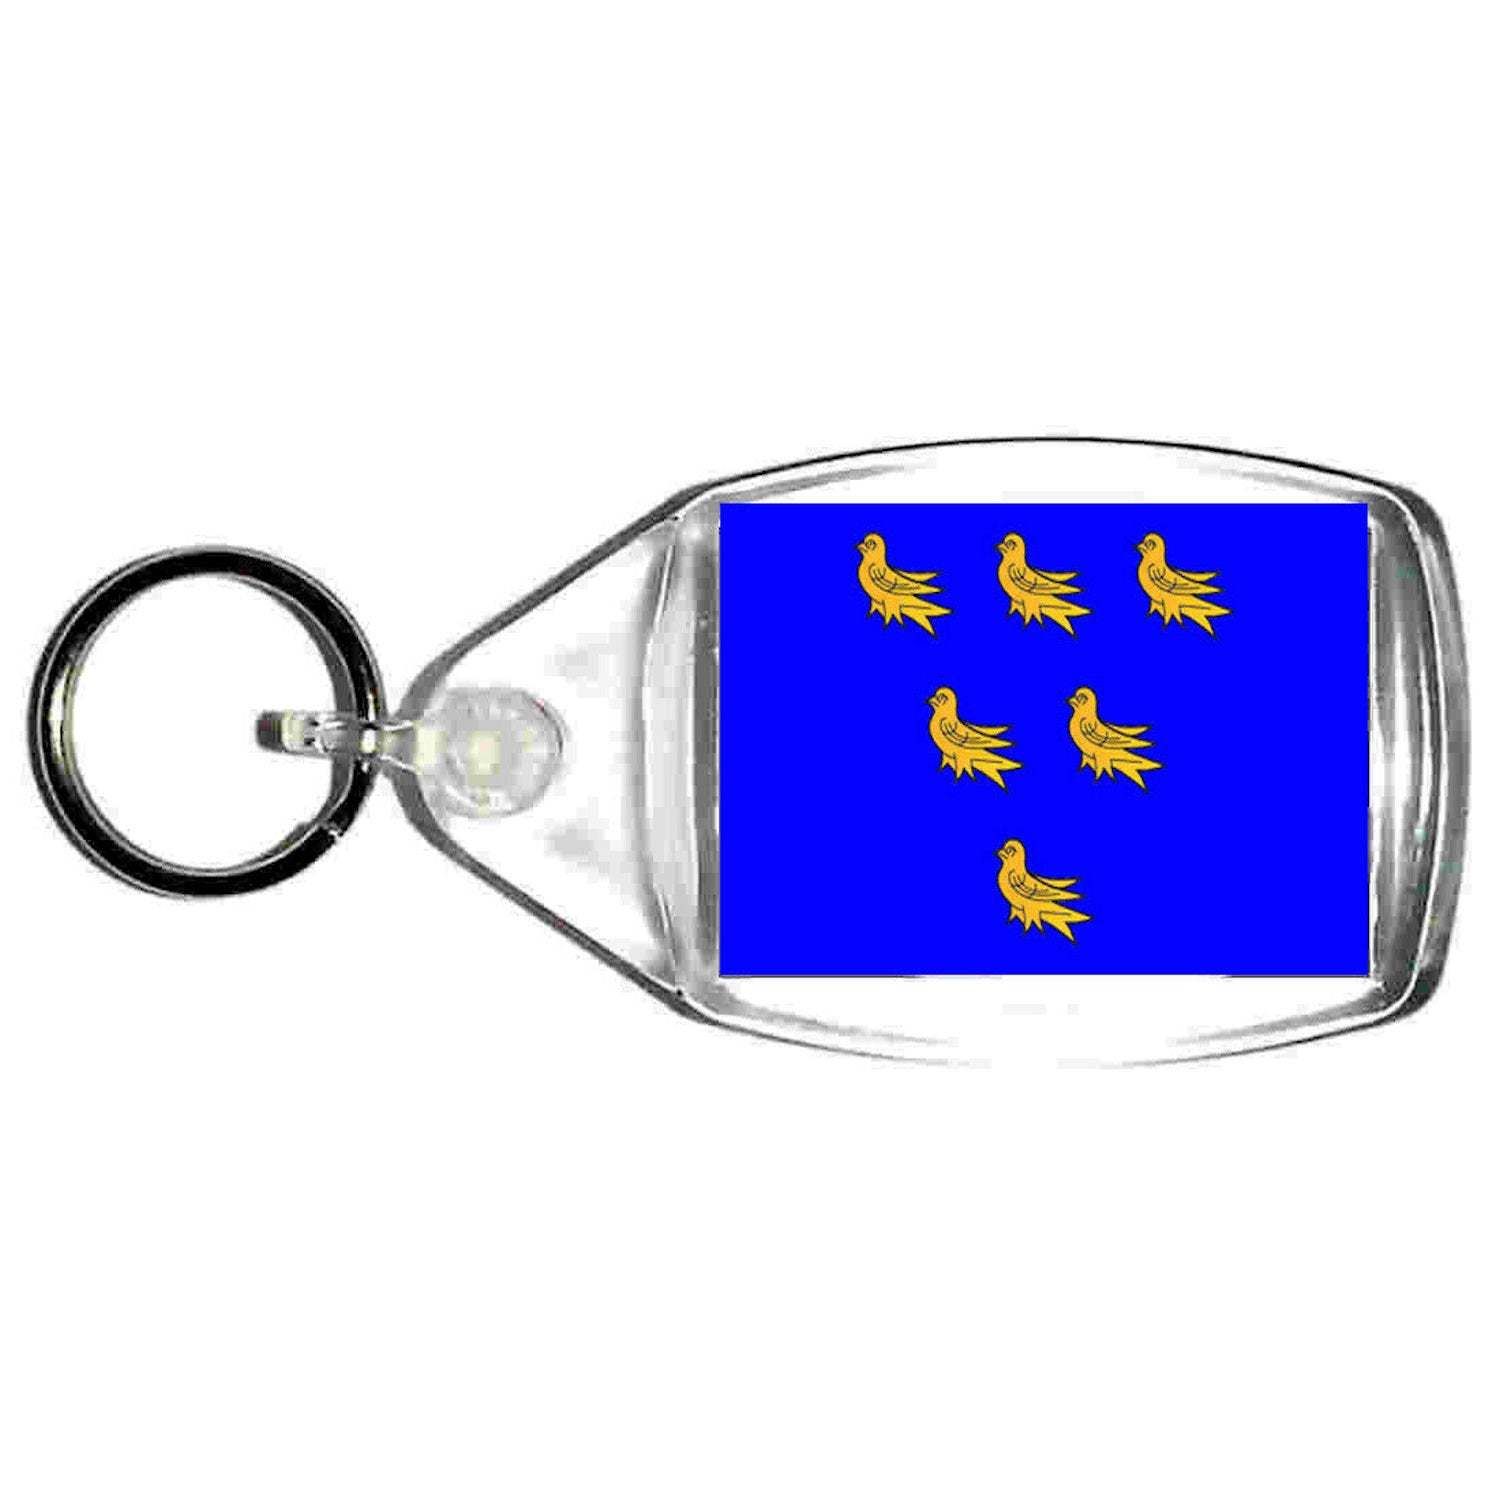 keyring double sided uk county of sussex flag, keychain, key ring, made in uk